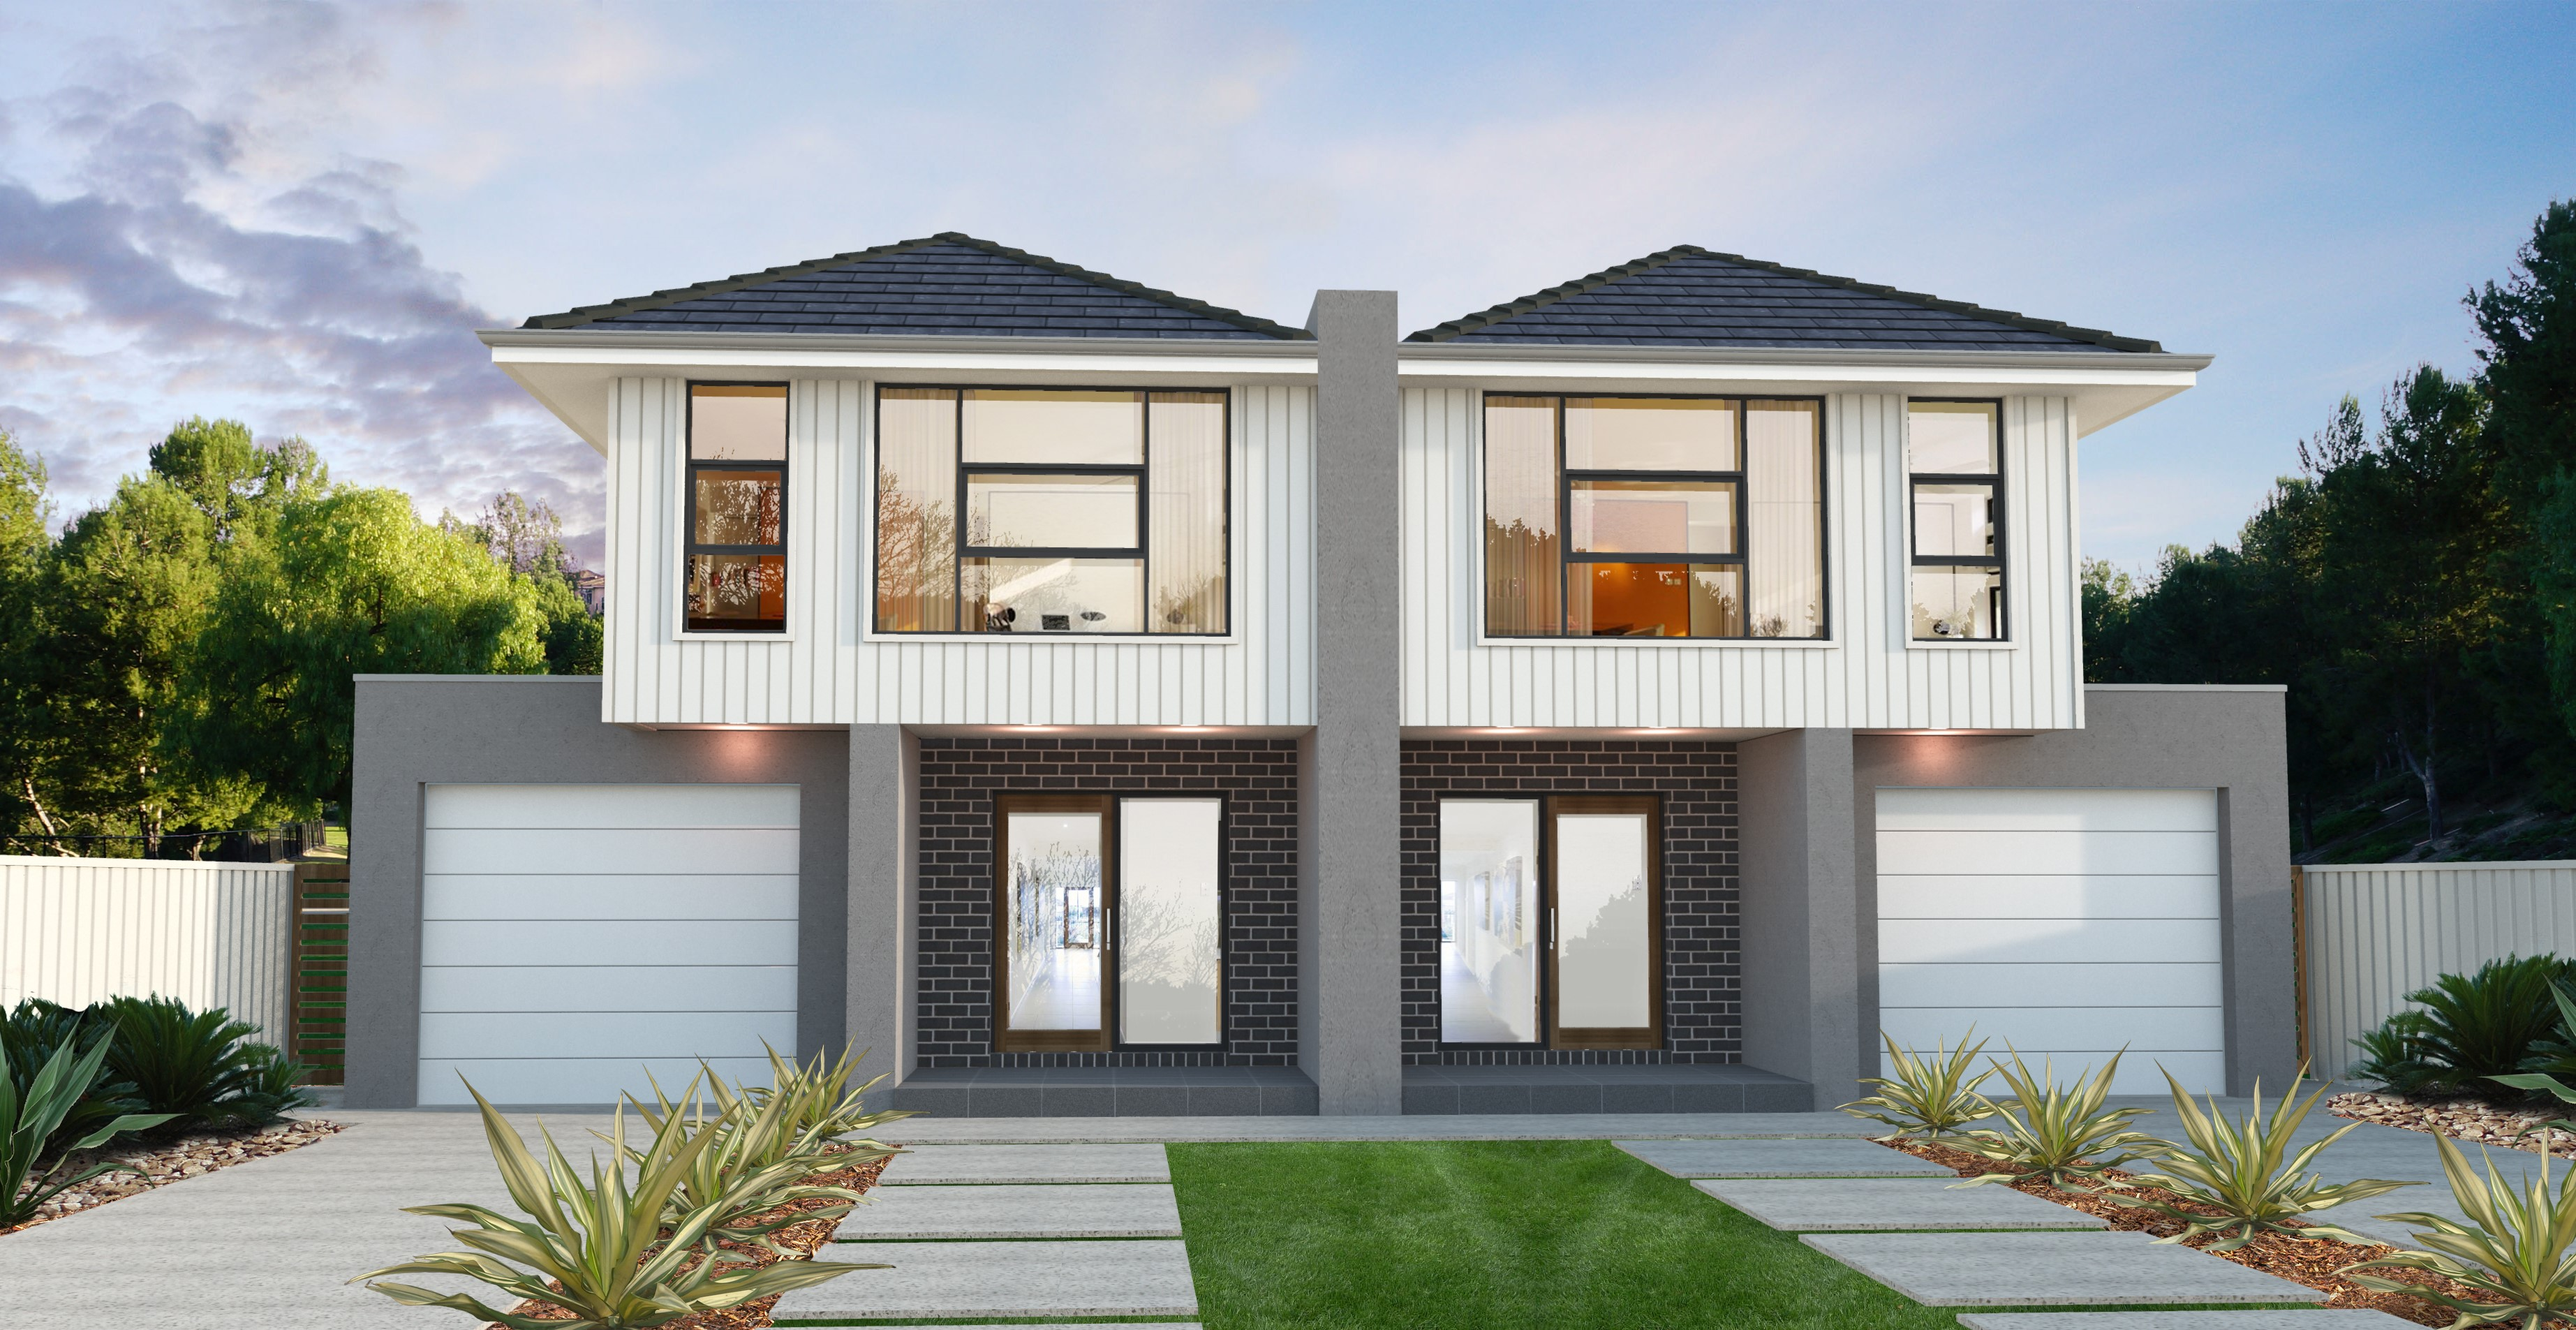 Dual occupancy home designs melbourne home design ideas for Dual occupancy home designs corner block